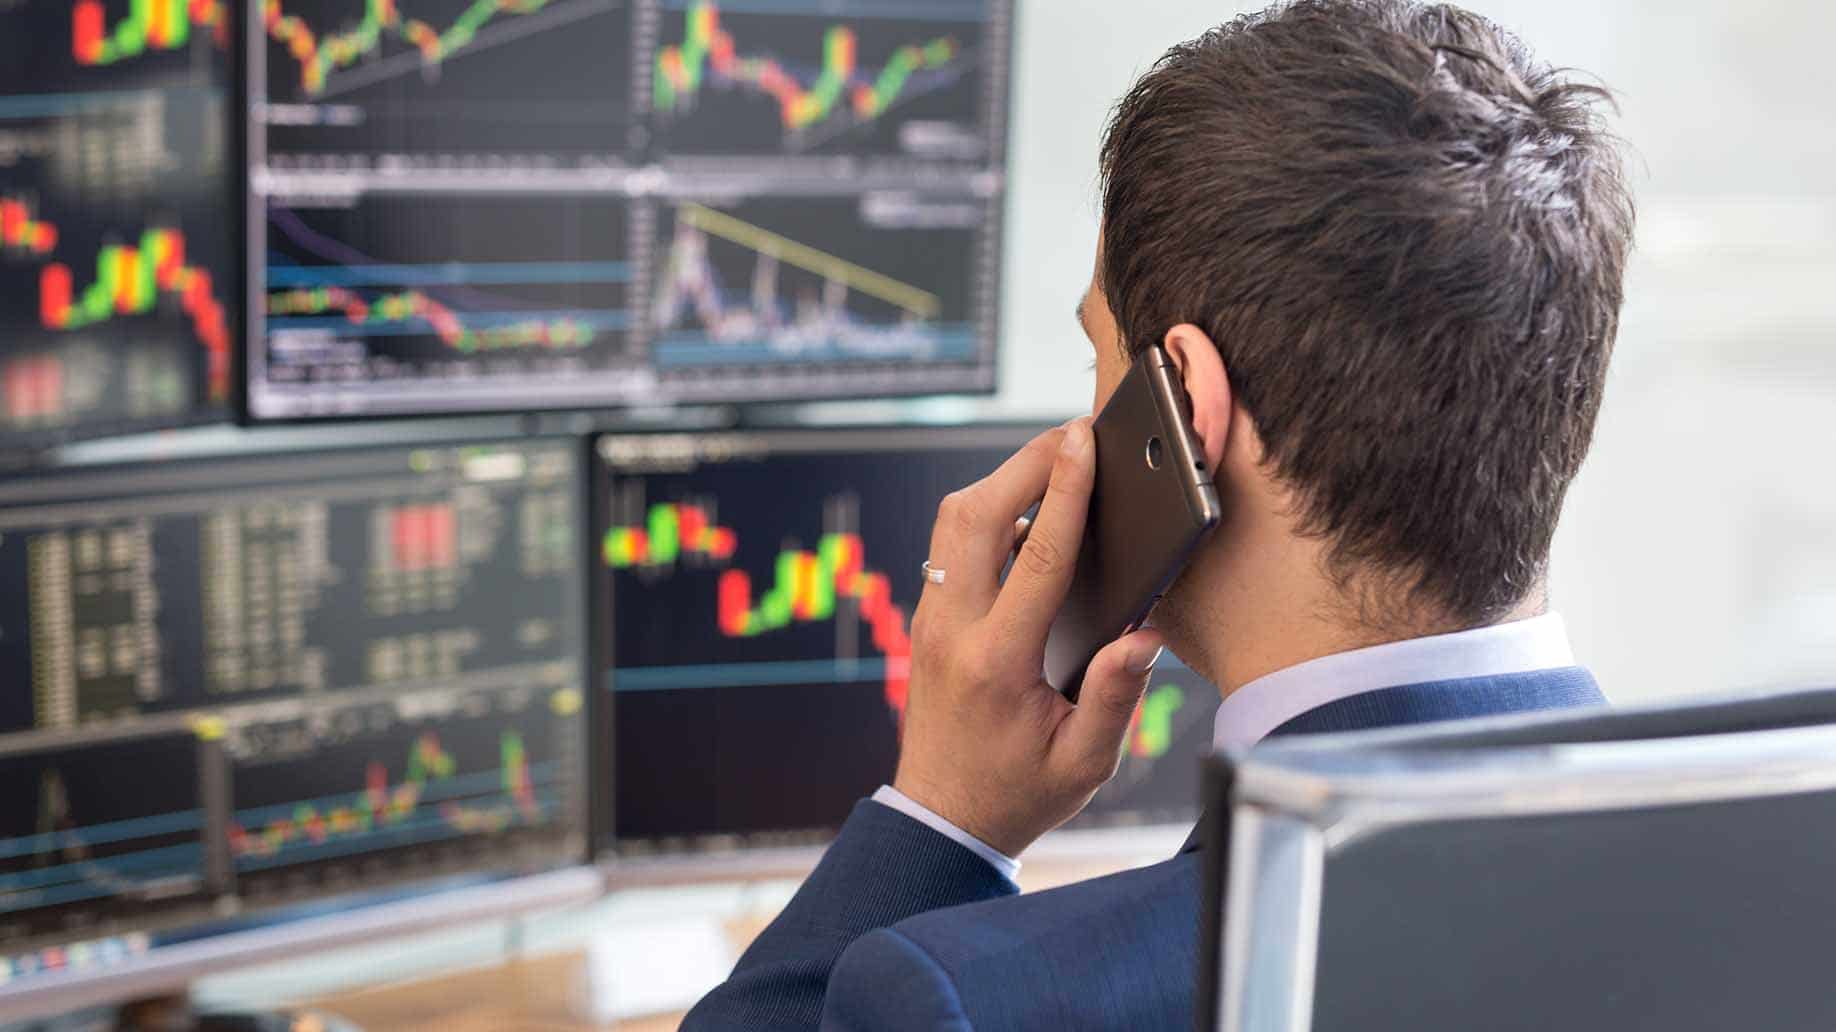 man talking on phone while analyzing stocks